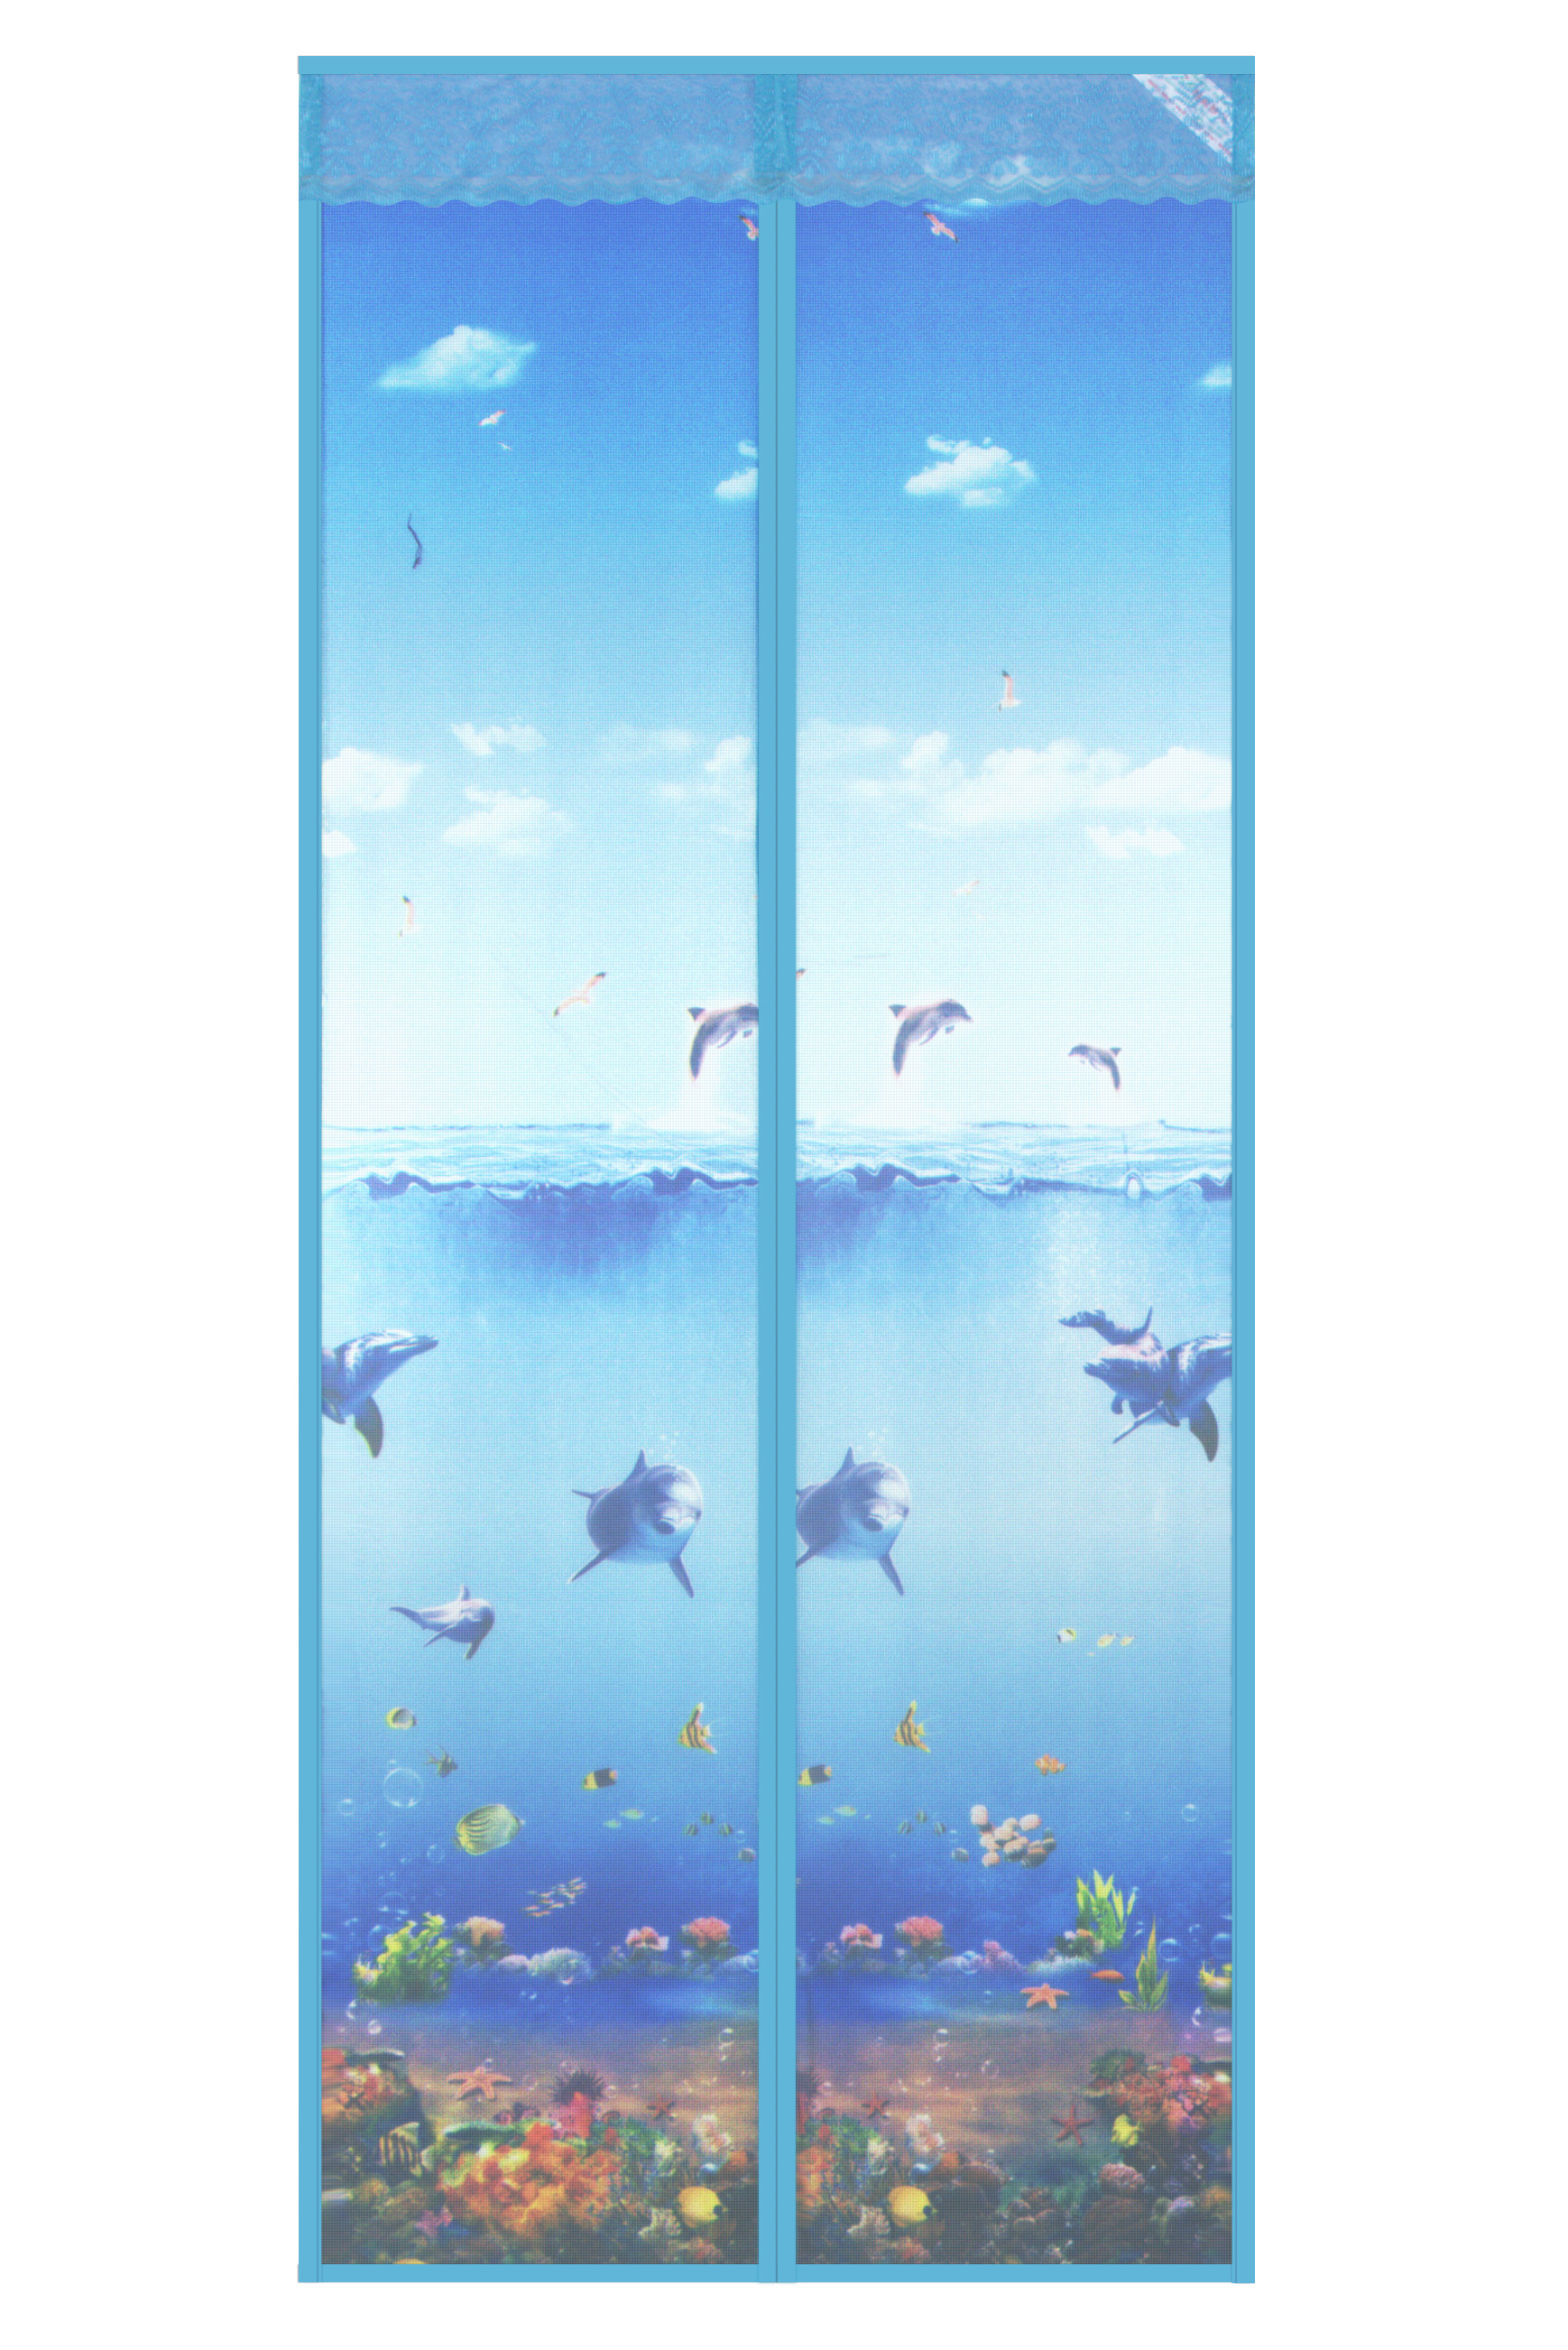 New magnetic soft curtain in 2020-Underwater world magnetic soft curtain-blue